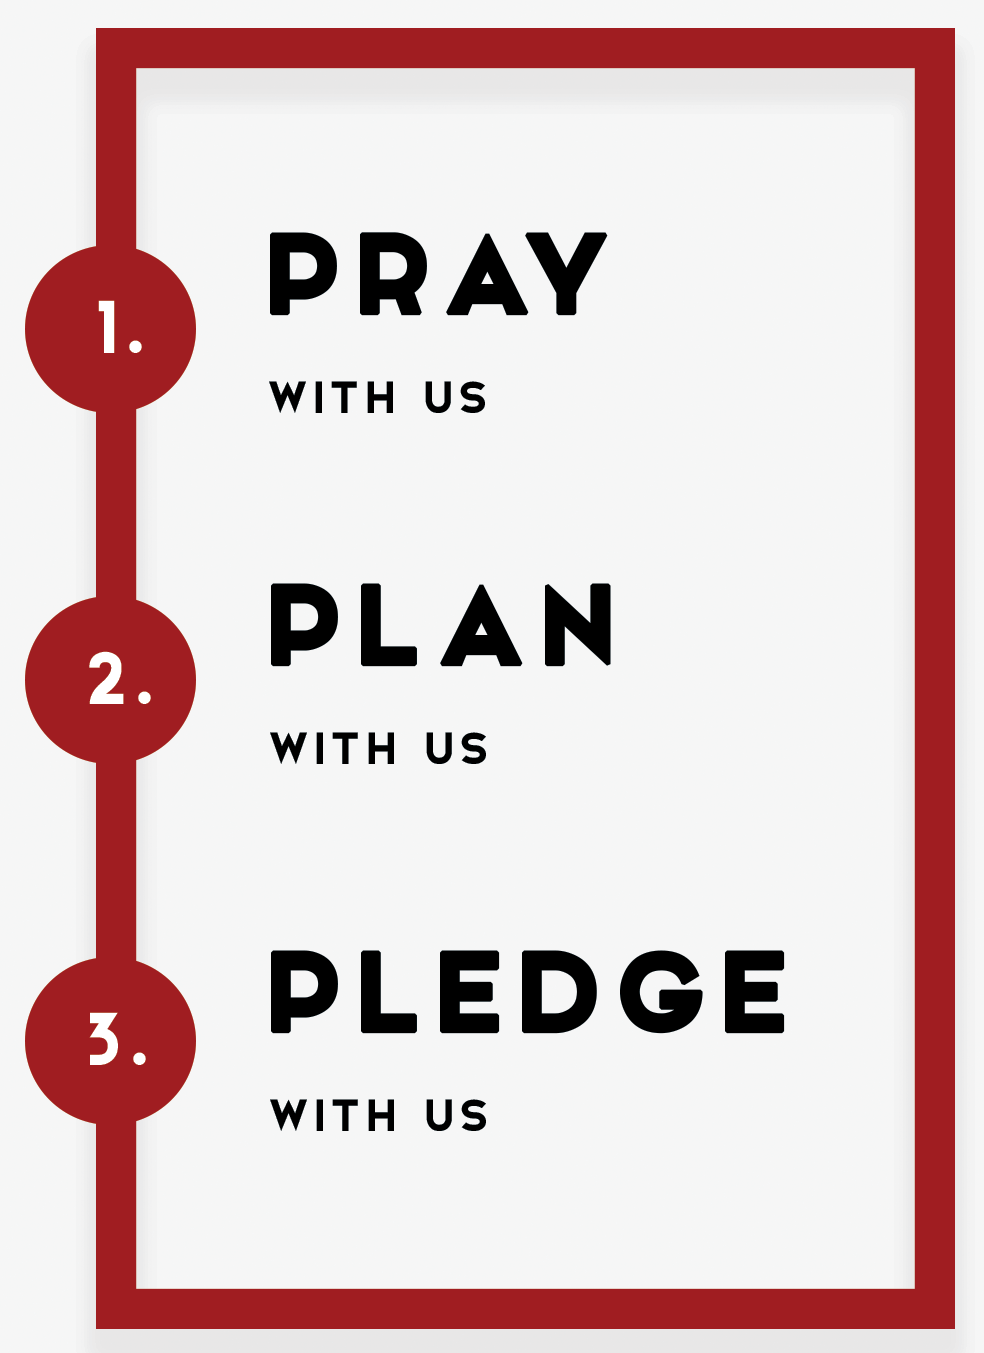 "- If we hit both of these goals, we would be closer to matching our ministry budget, empowering us to continue to share the saving message of the Gospel with the city, and the rest of the world.I pray that God would continue to use Calvary-St. George's, through your 2019 financial pledge to share the Gospel with all who come through our doors: that in the death and resurrection of Jesus Christ, you are fully loved, fully forgiven, and fully justified before God. So please prayerfully consider how you might give this year as we continue to, ""publish glad tidings, tidings of peace, tidings of Jesus redemption and release.""Grace to you,The Reverend Jacob Andrew Smith"